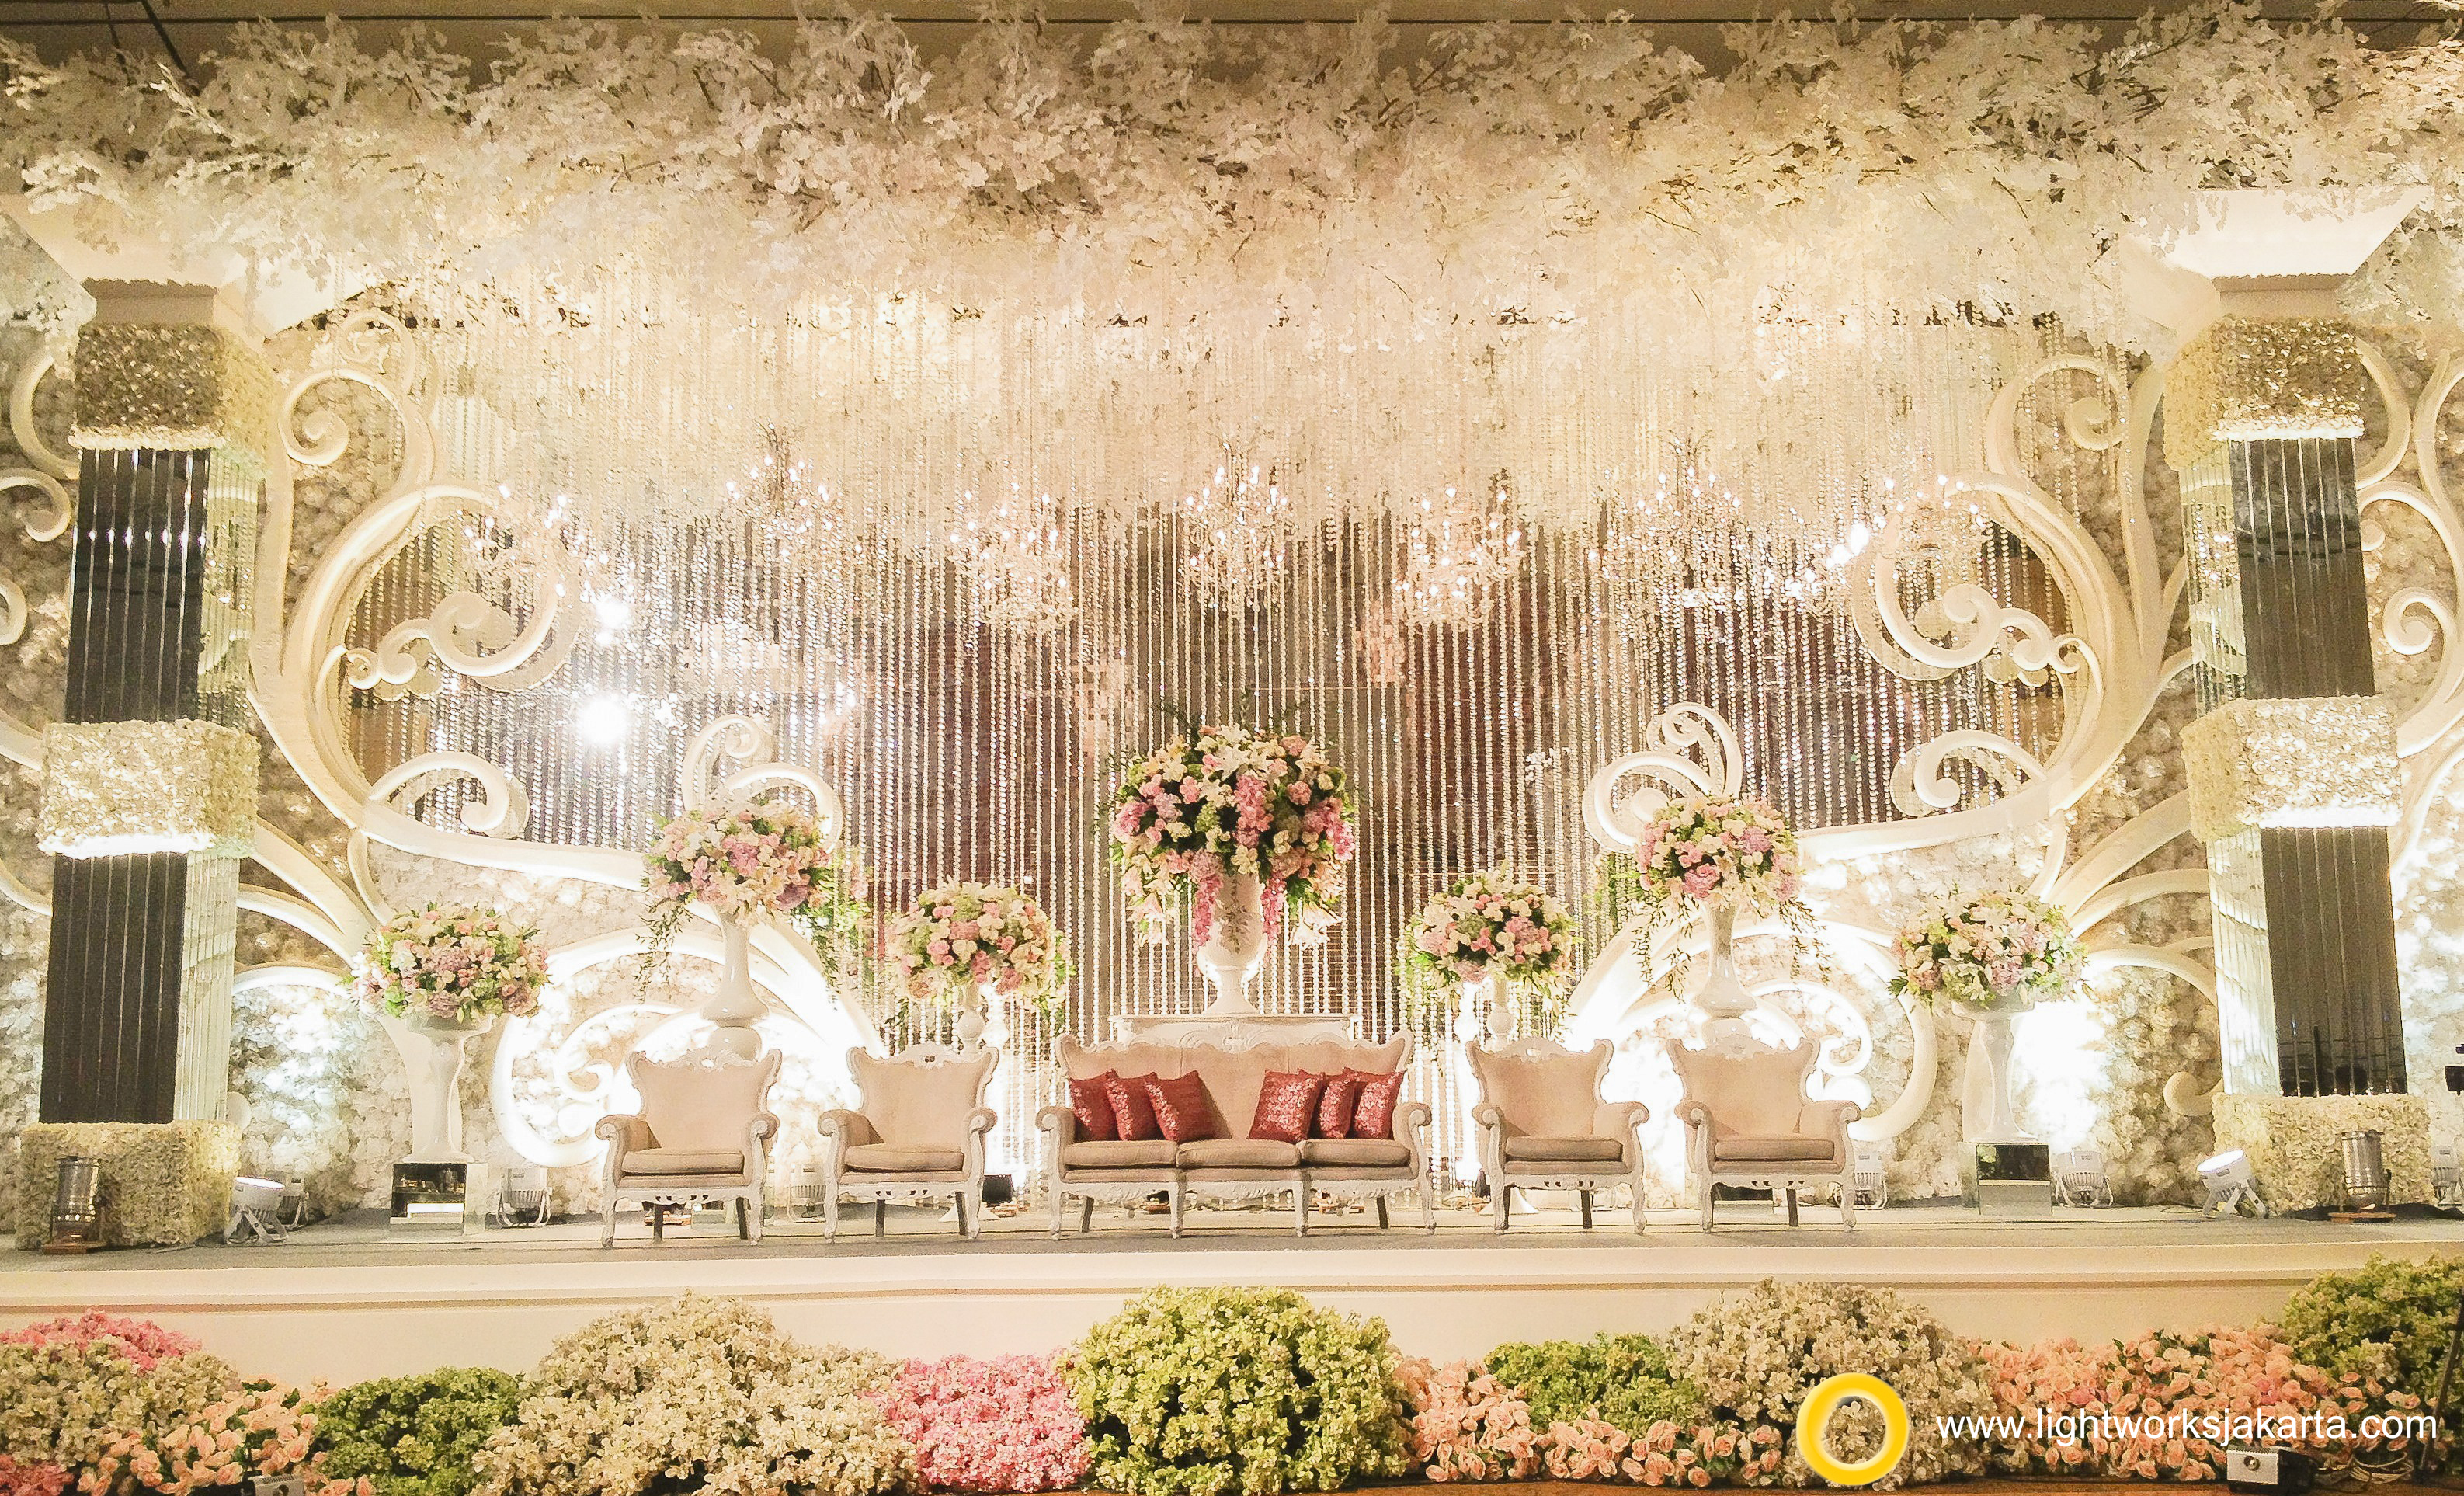 Wedding decoration jakarta choice image wedding dress decoration wedding decoration vendor jakarta image collections wedding dress wedding decoration vendor jakarta junglespirit choice image junglespirit Image collections